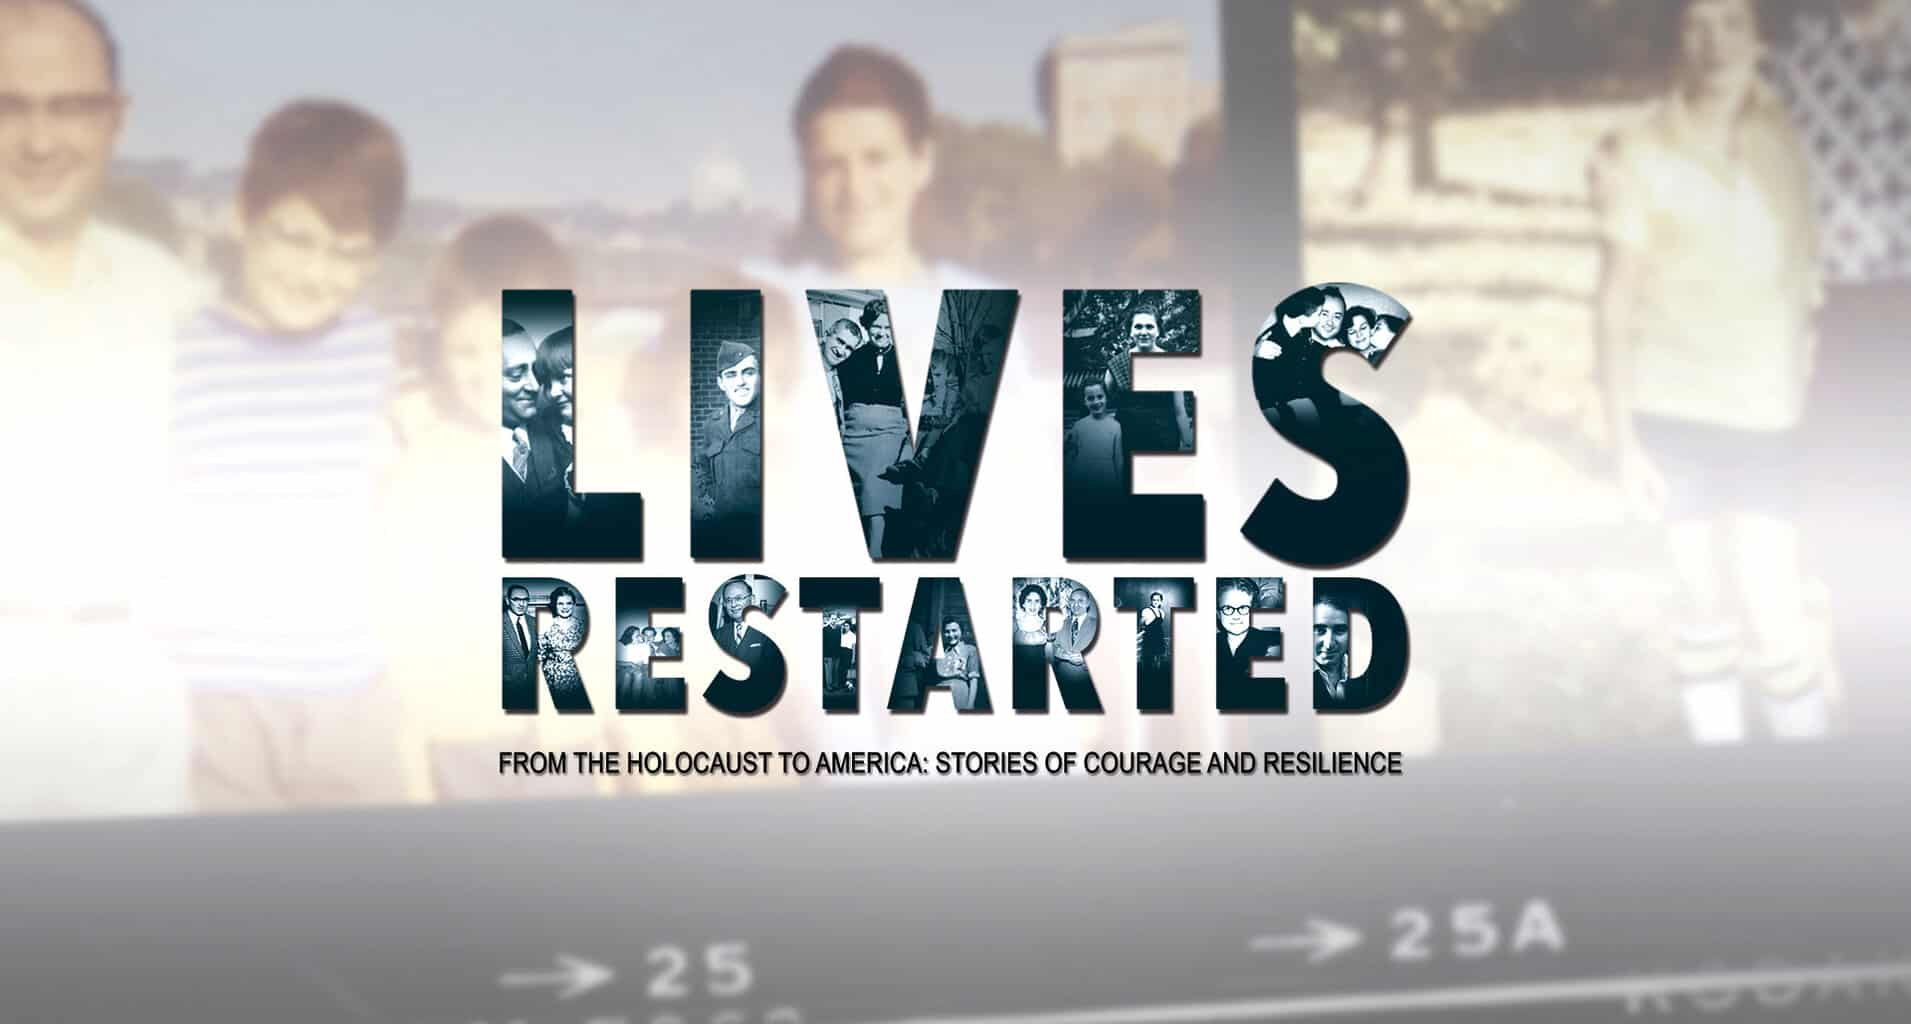 jcp-commissioned-holocaust-film-lives-restarted-now-available-on-amazon-prime